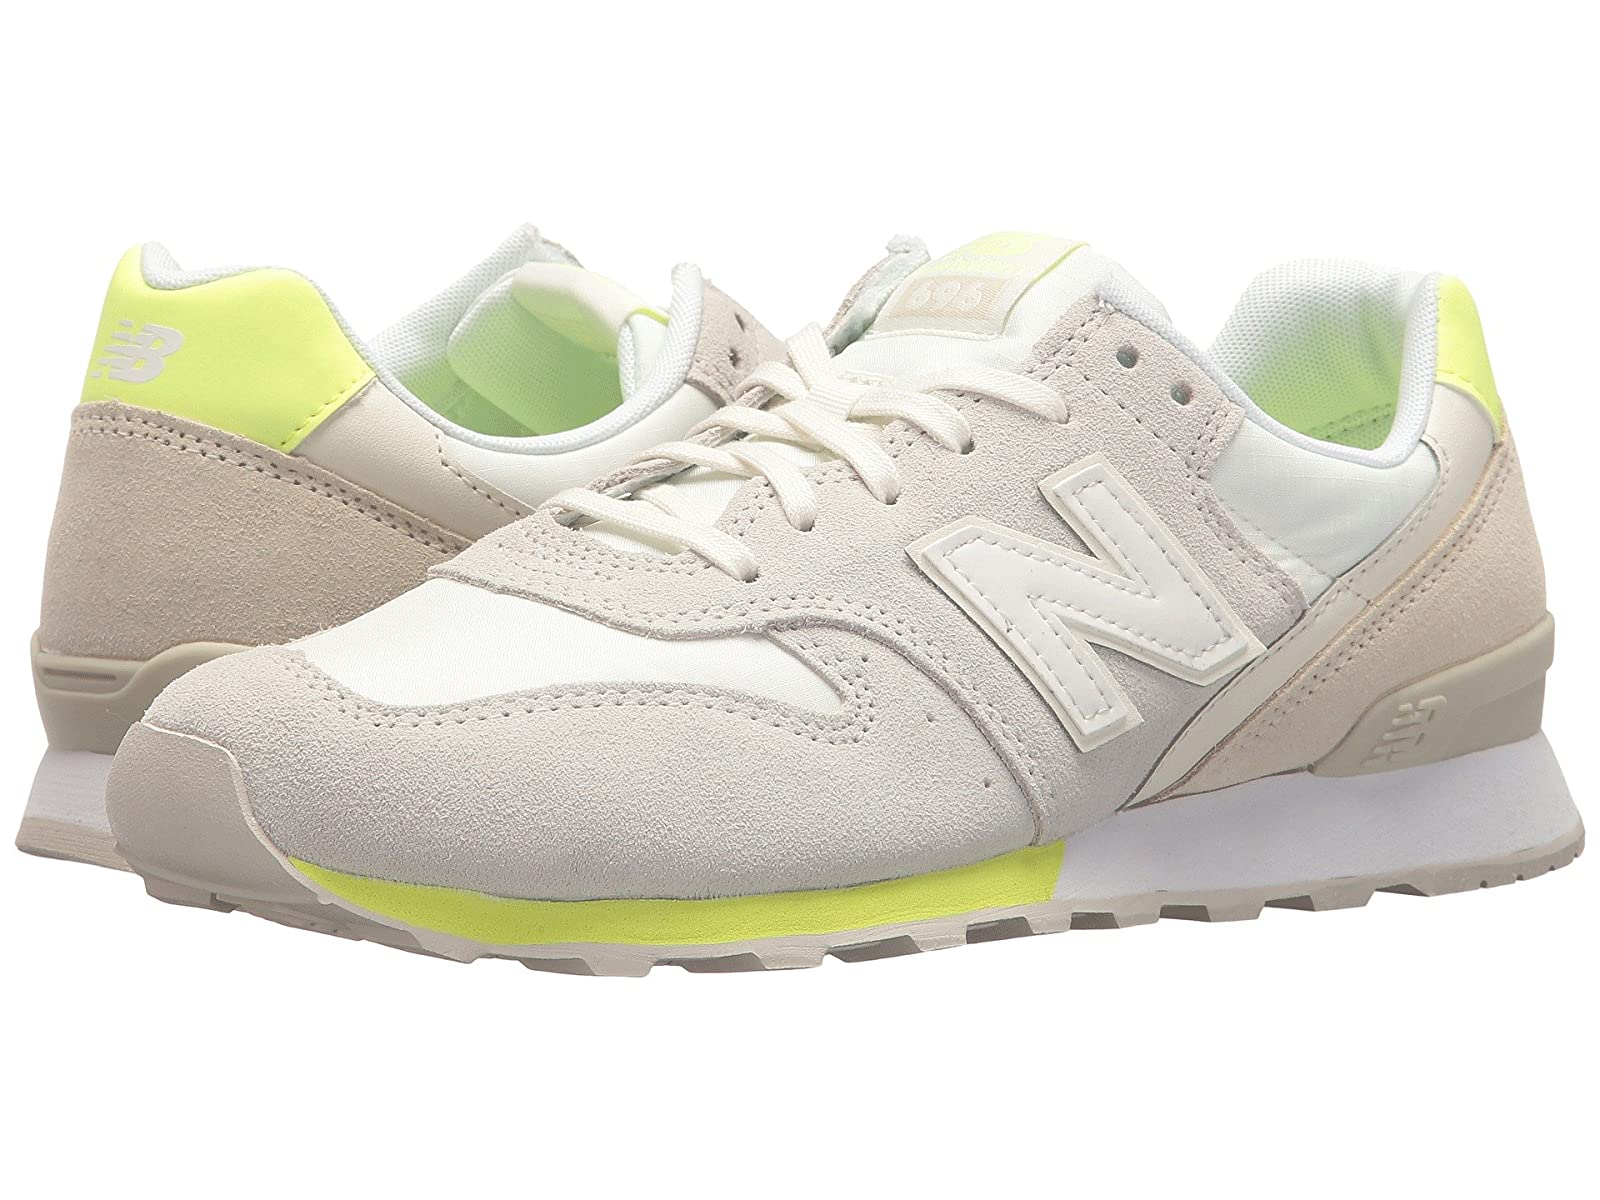 New Balance Classics WL696v1Cheap and distinctive eye-catching shoes